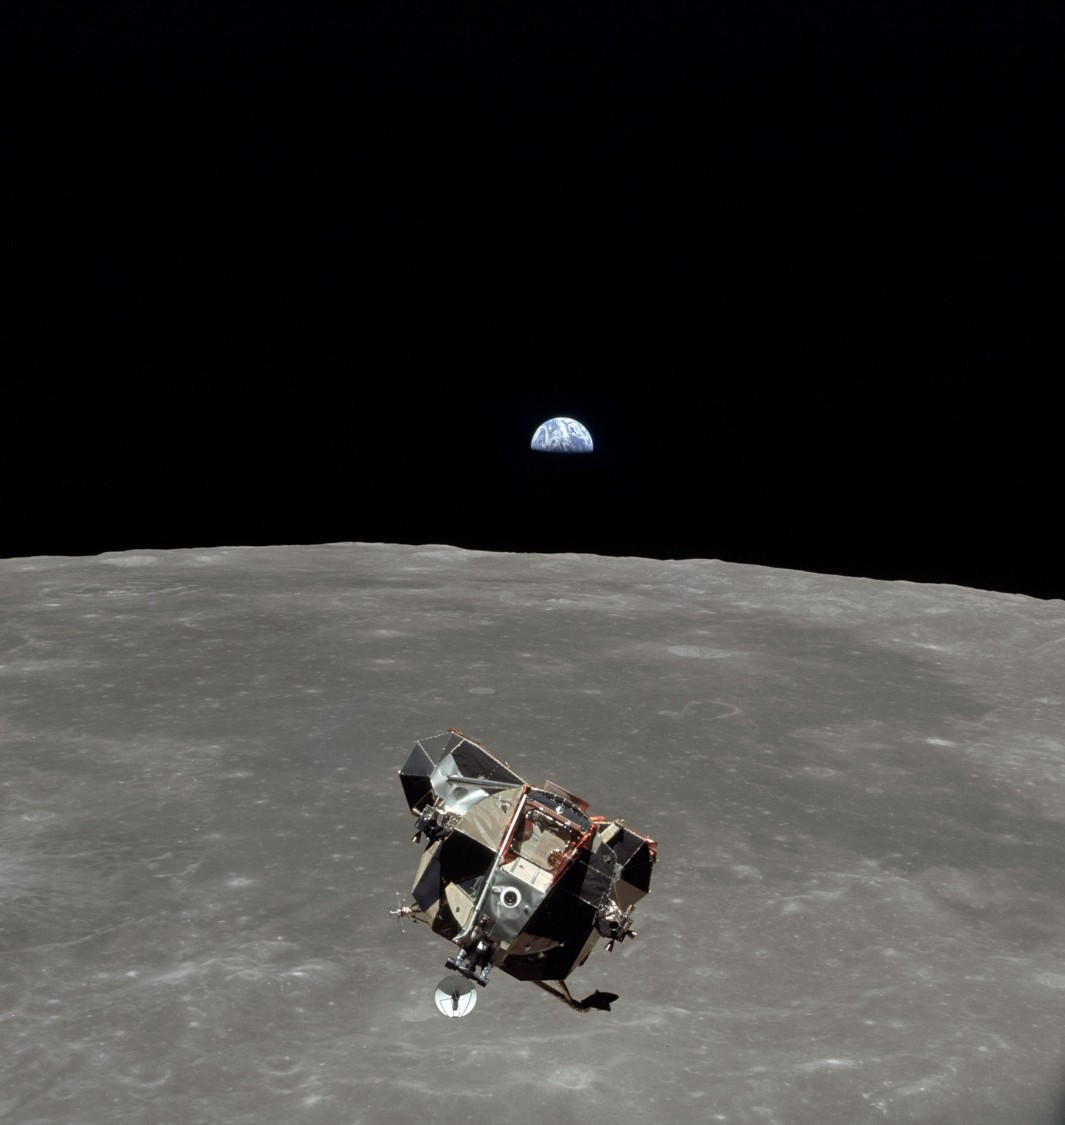 Lunar module Eagle flies over the moon